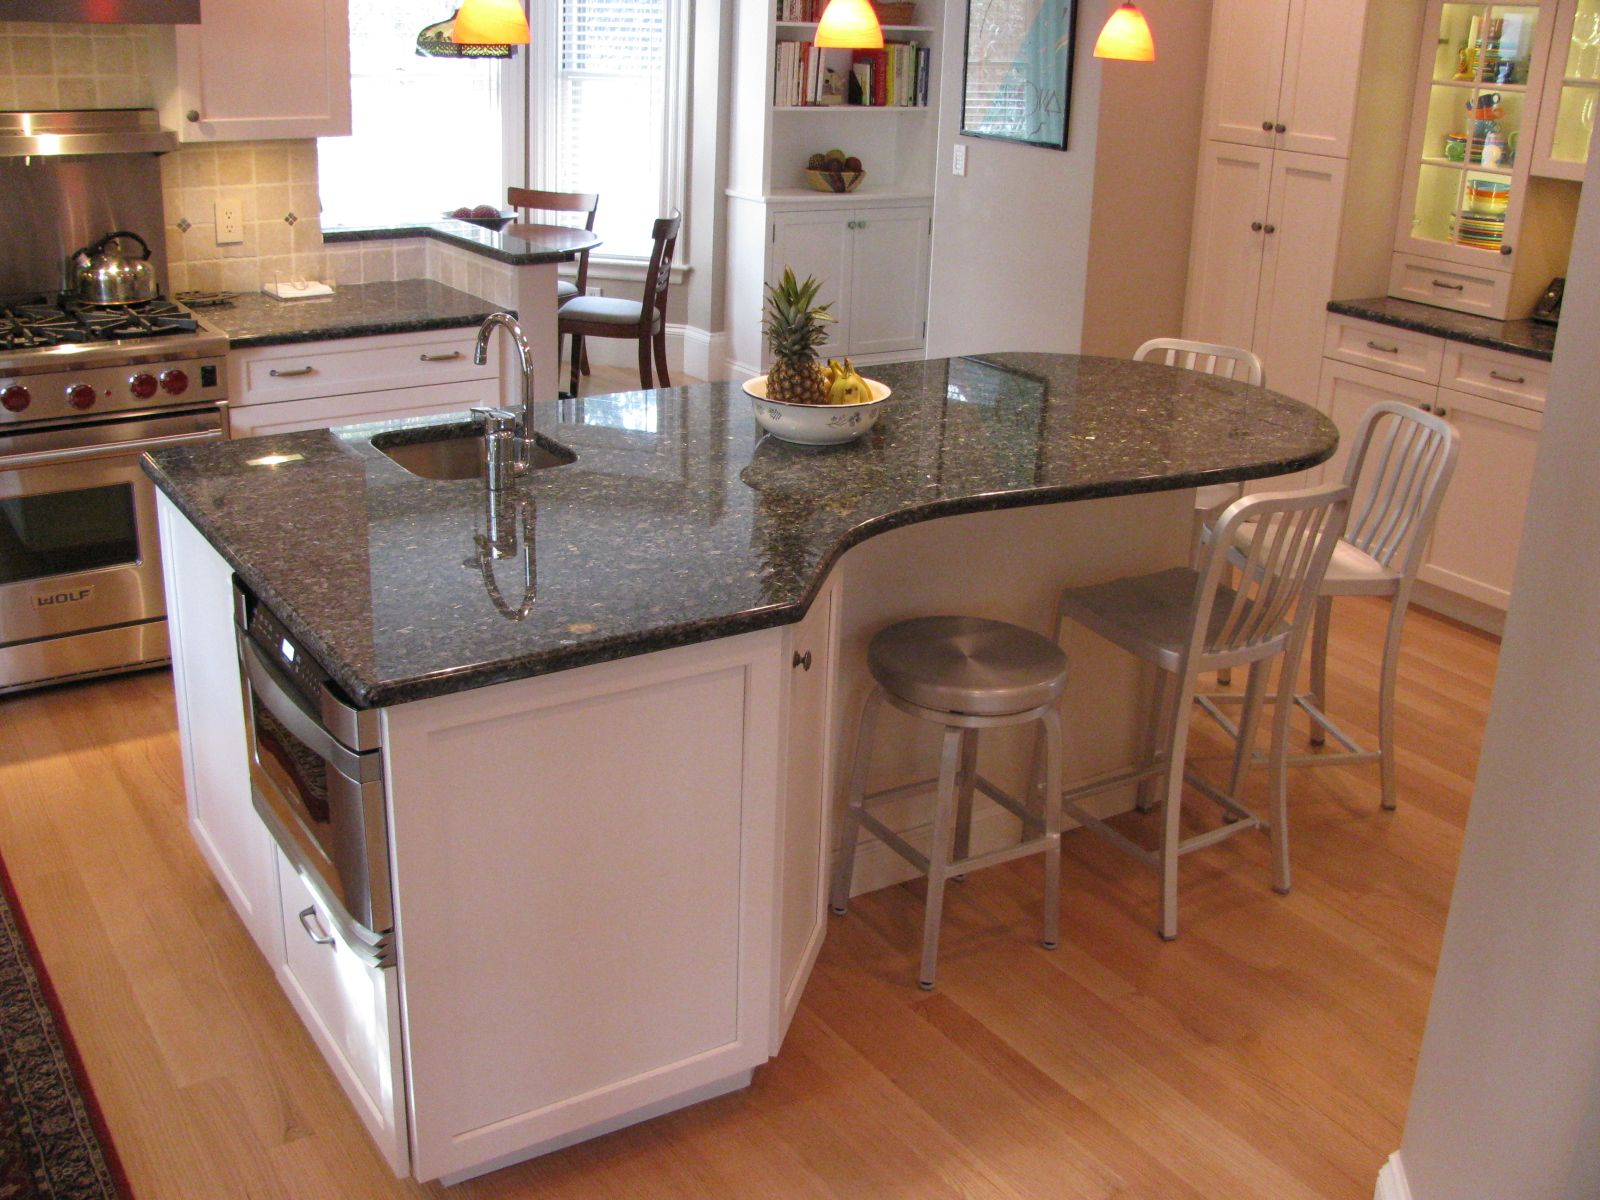 Kitchen islands with seating kitchen island seating Kitchen island with seating